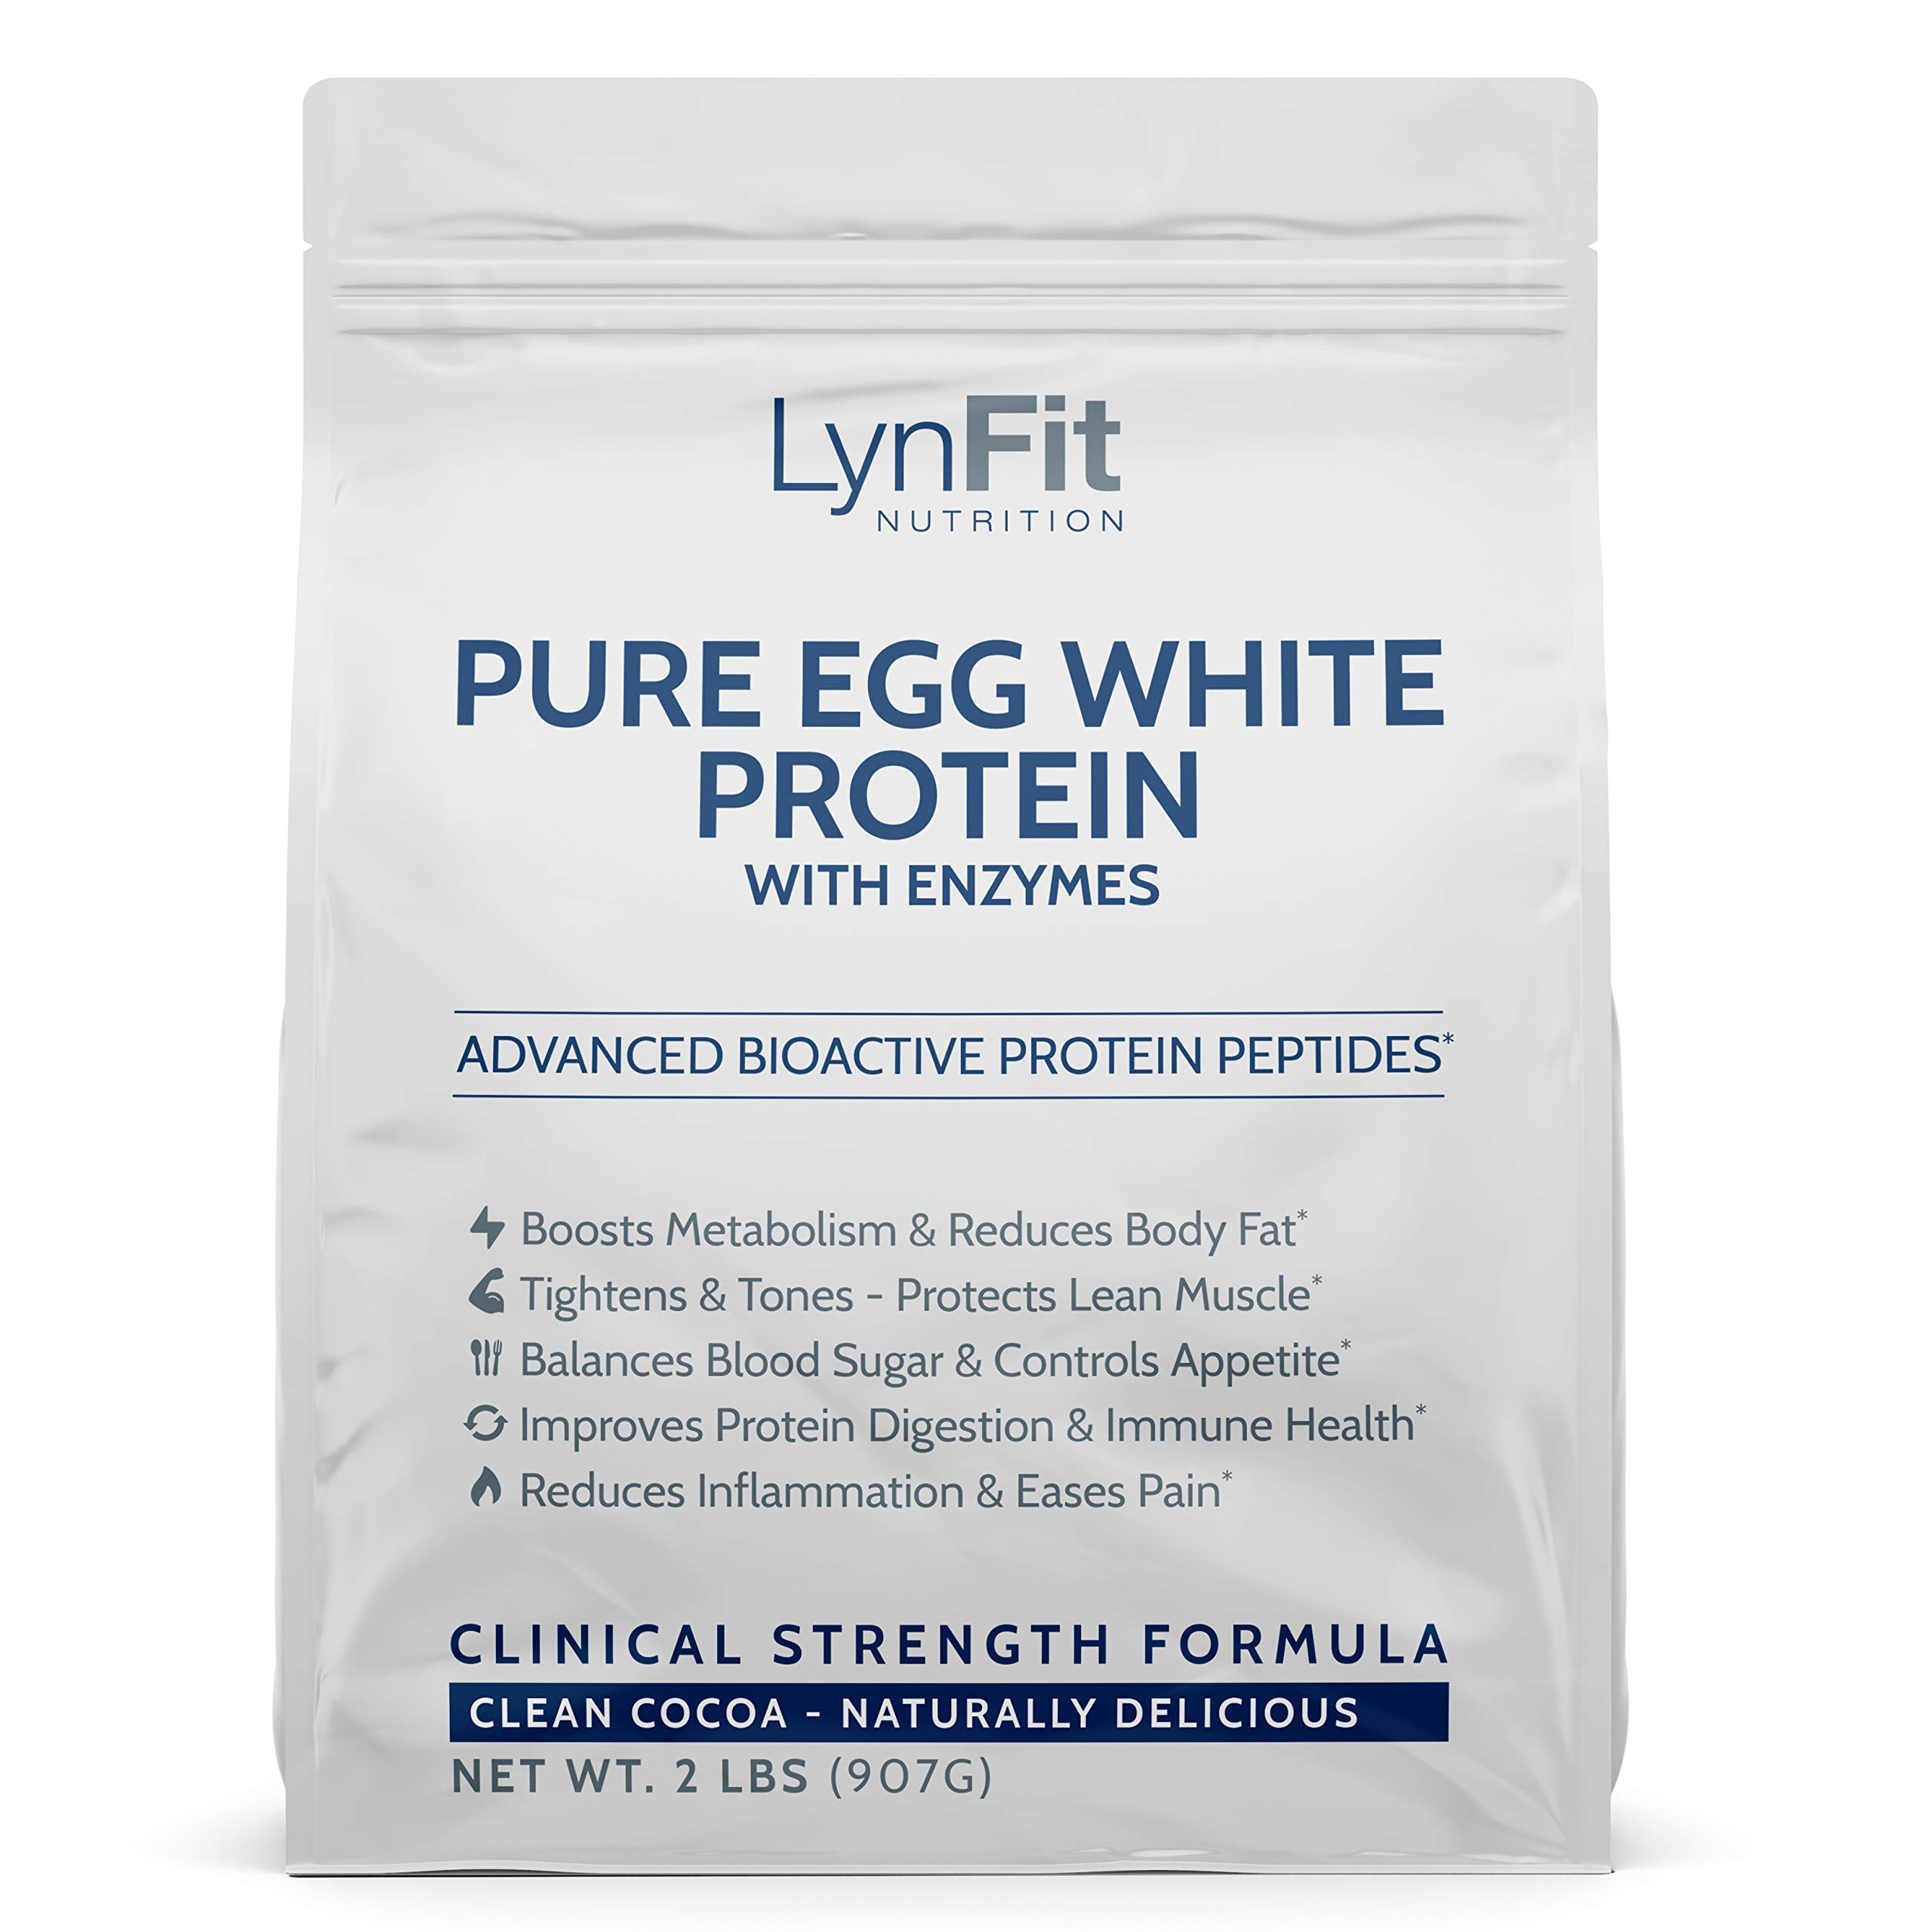 All-Natural, Metabolic Boosting Egg White Protein Powder - Clean Cocoa - 2 Pounds